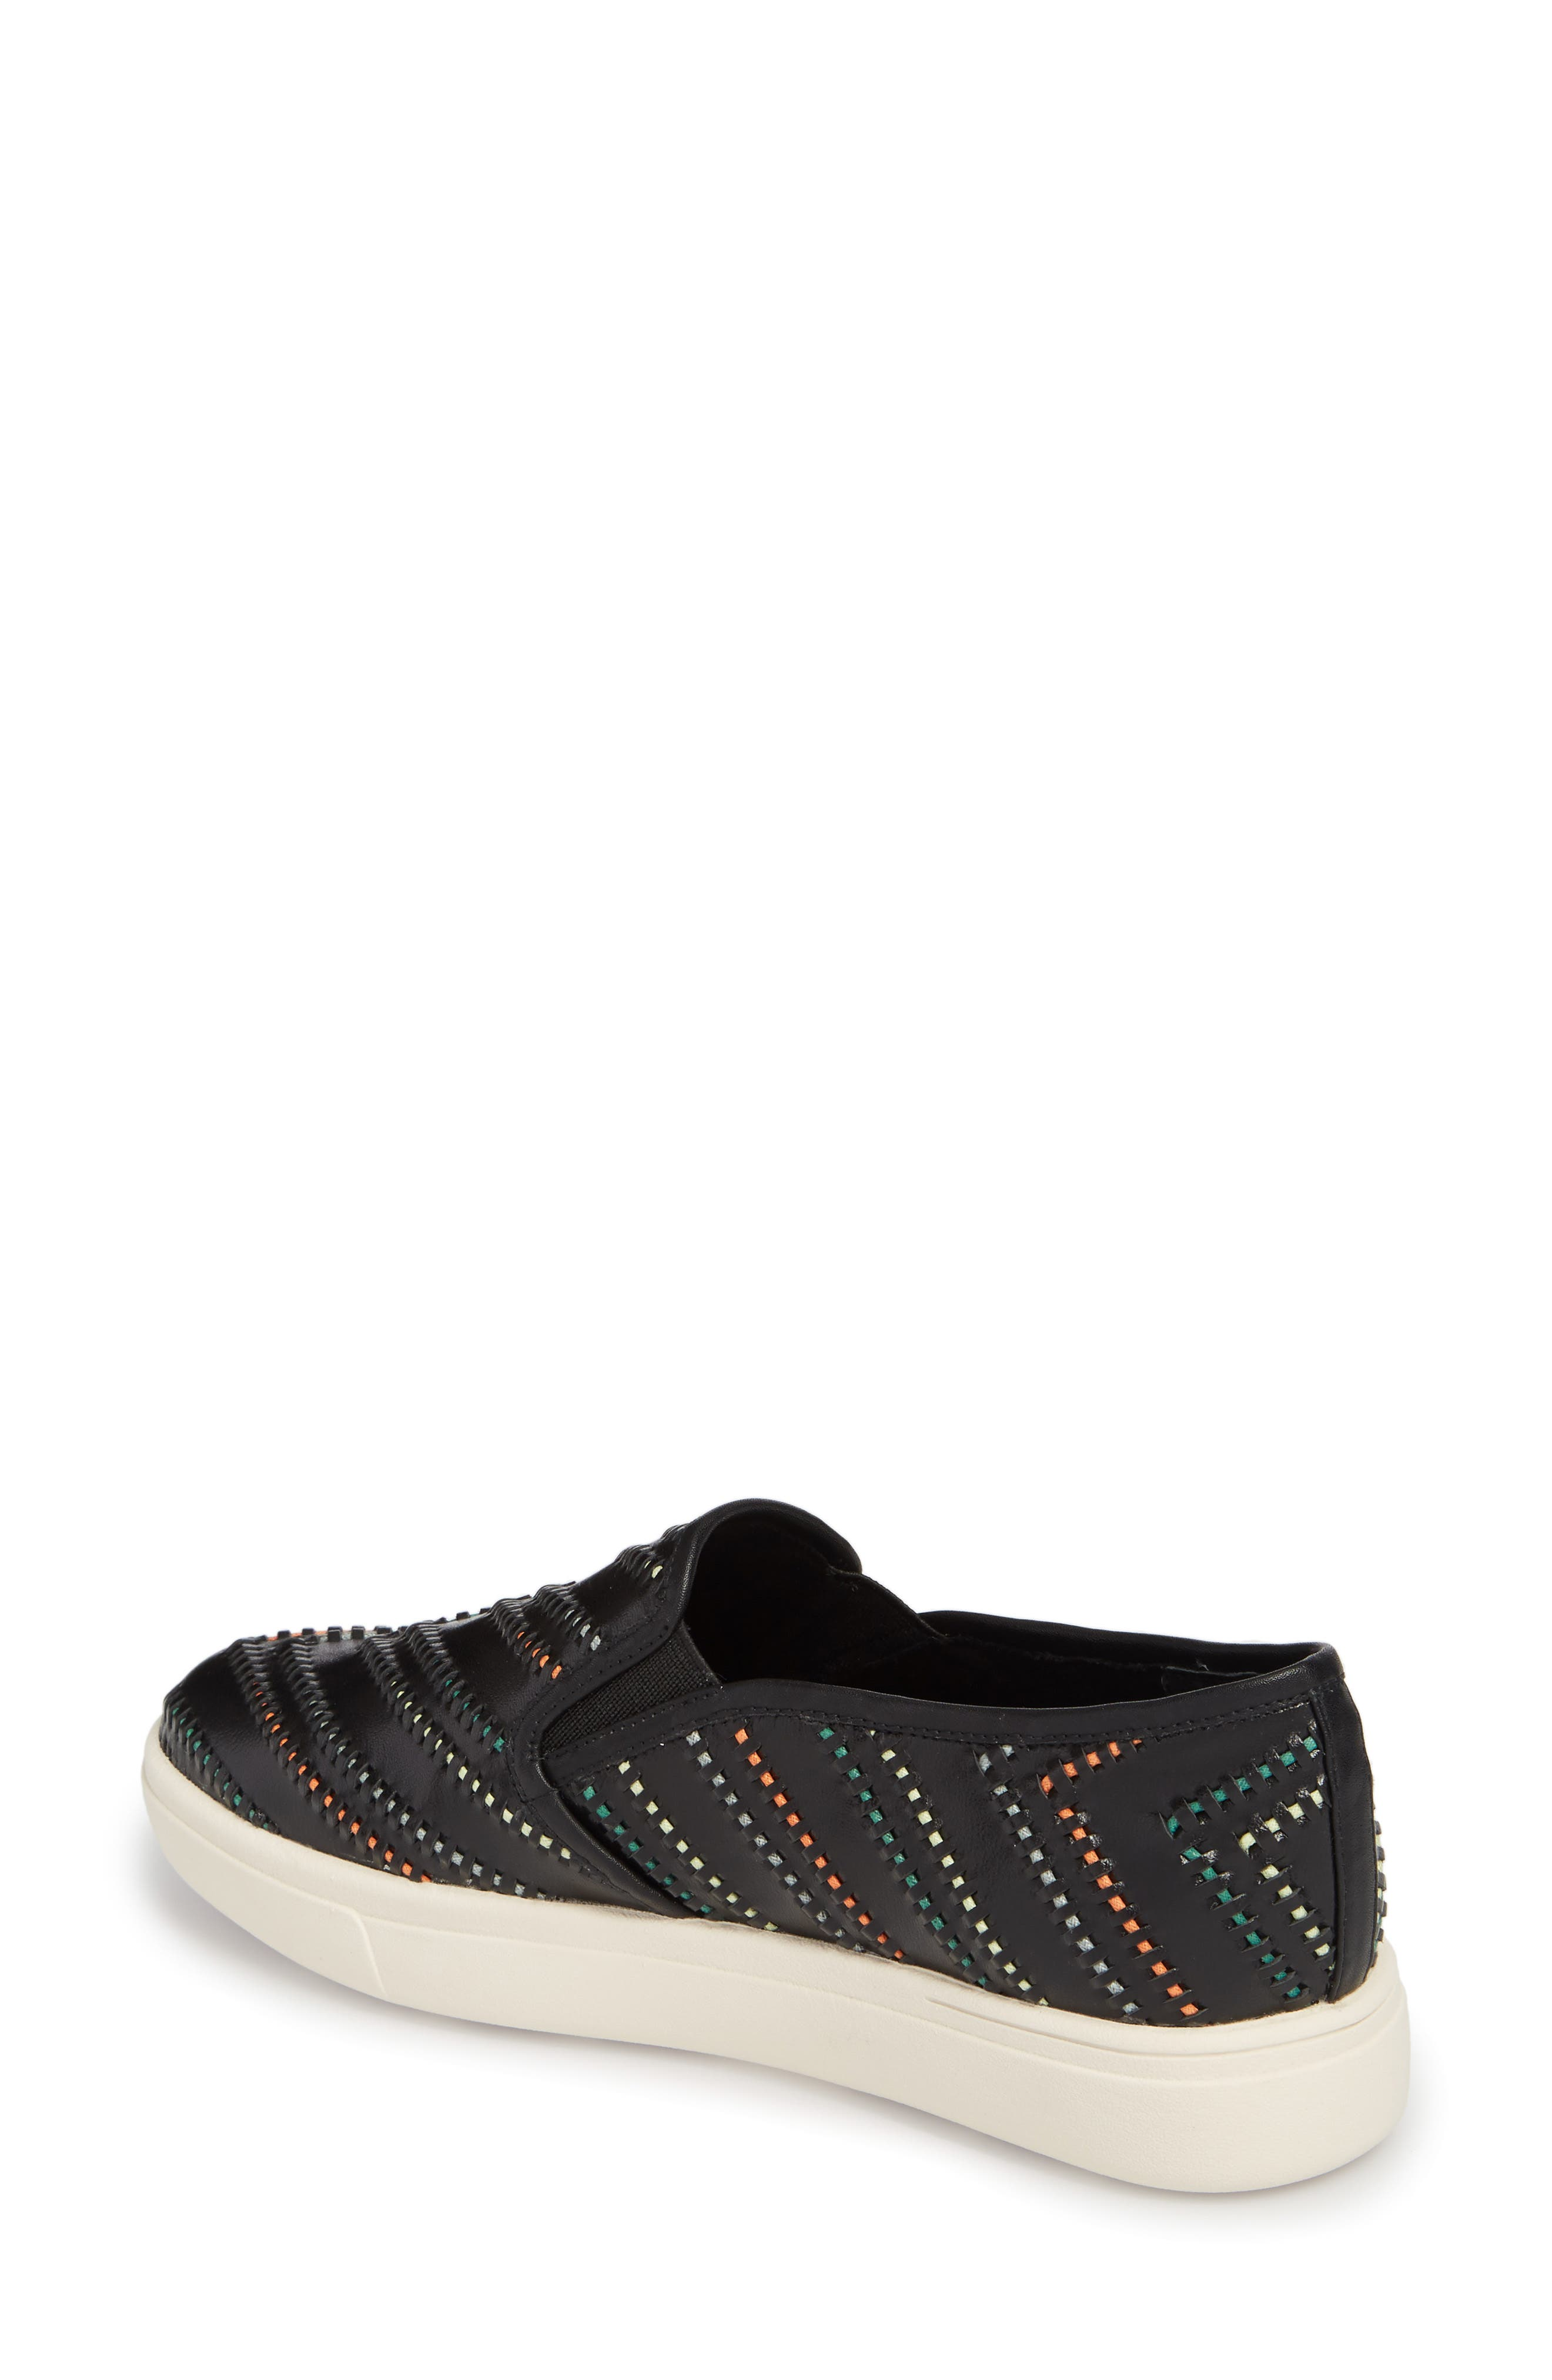 Ocean Slip-On Sneaker,                             Alternate thumbnail 2, color,                             001